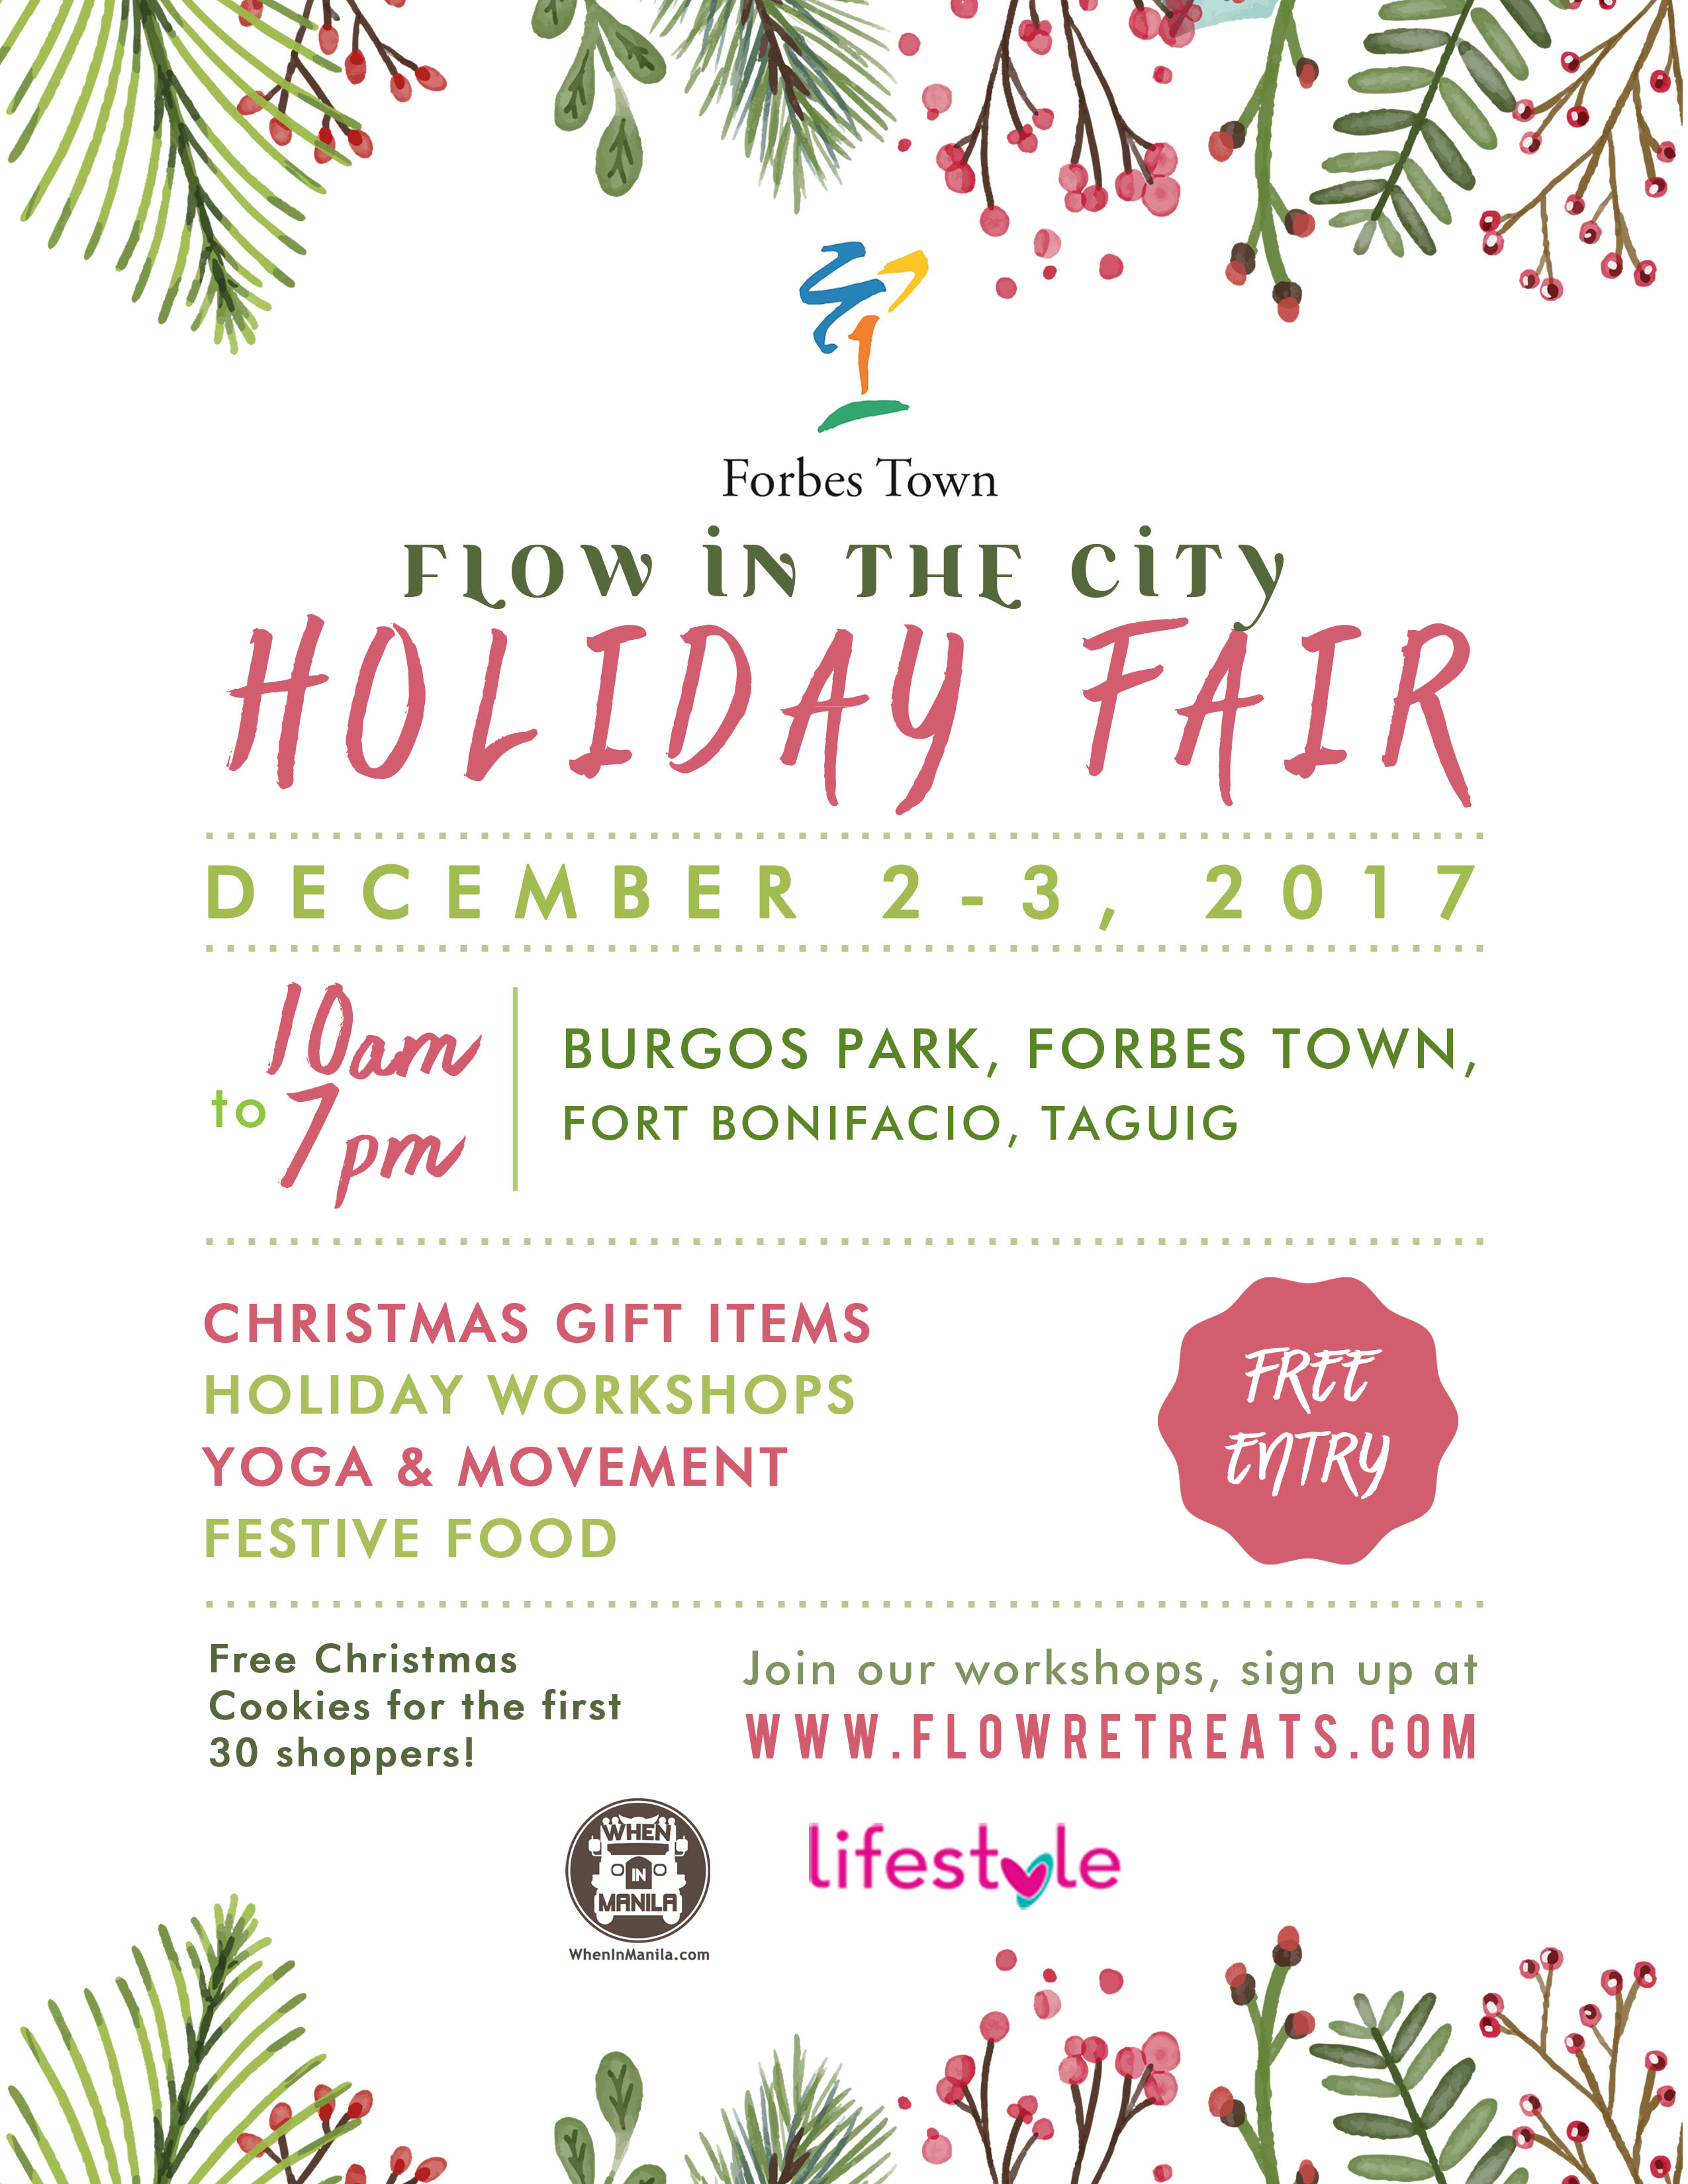 Events happening this weekend december 1 3 2017 philippine primer happening this december 2 to 3 2017 flow in the city holiday fair lets you in on an exciting wellness market journey as various goods and activities await stopboris Gallery